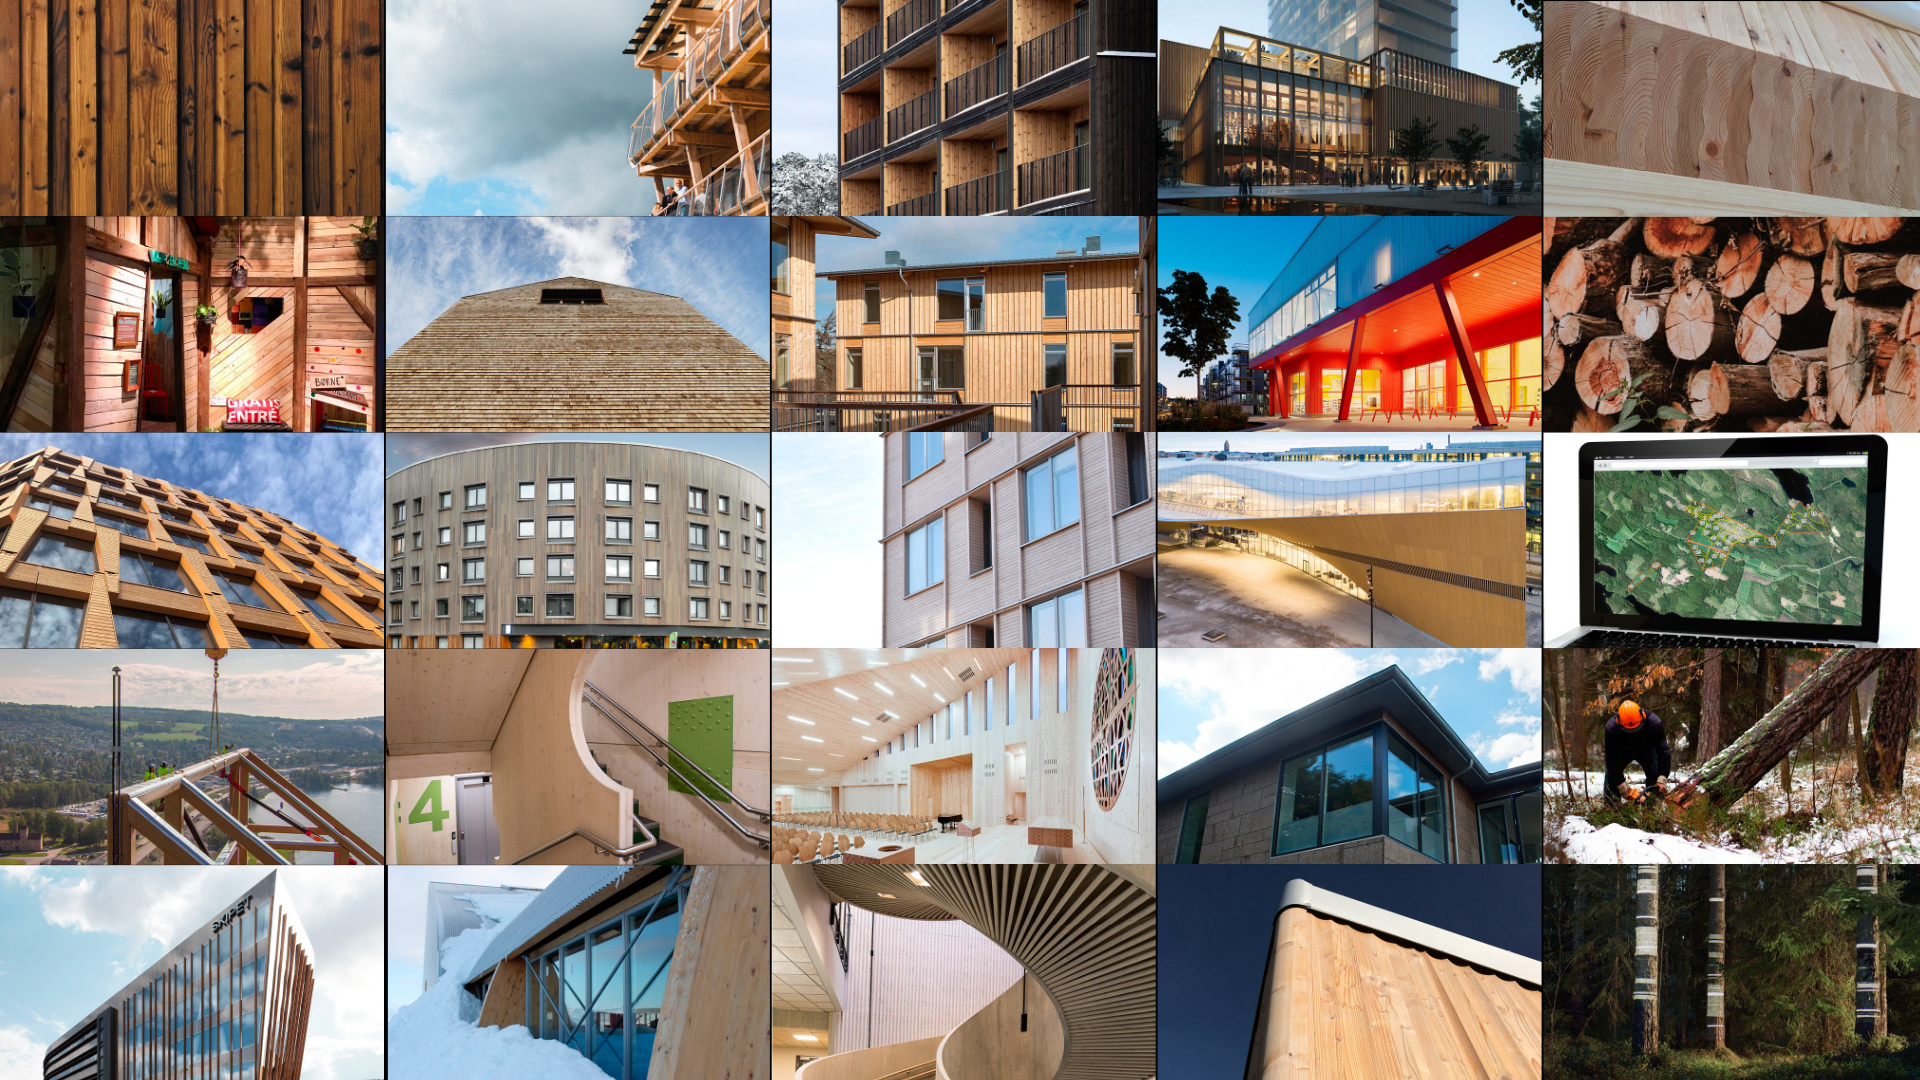 New Report Emphasizes Scandinavia's Innovation in Wood Construction